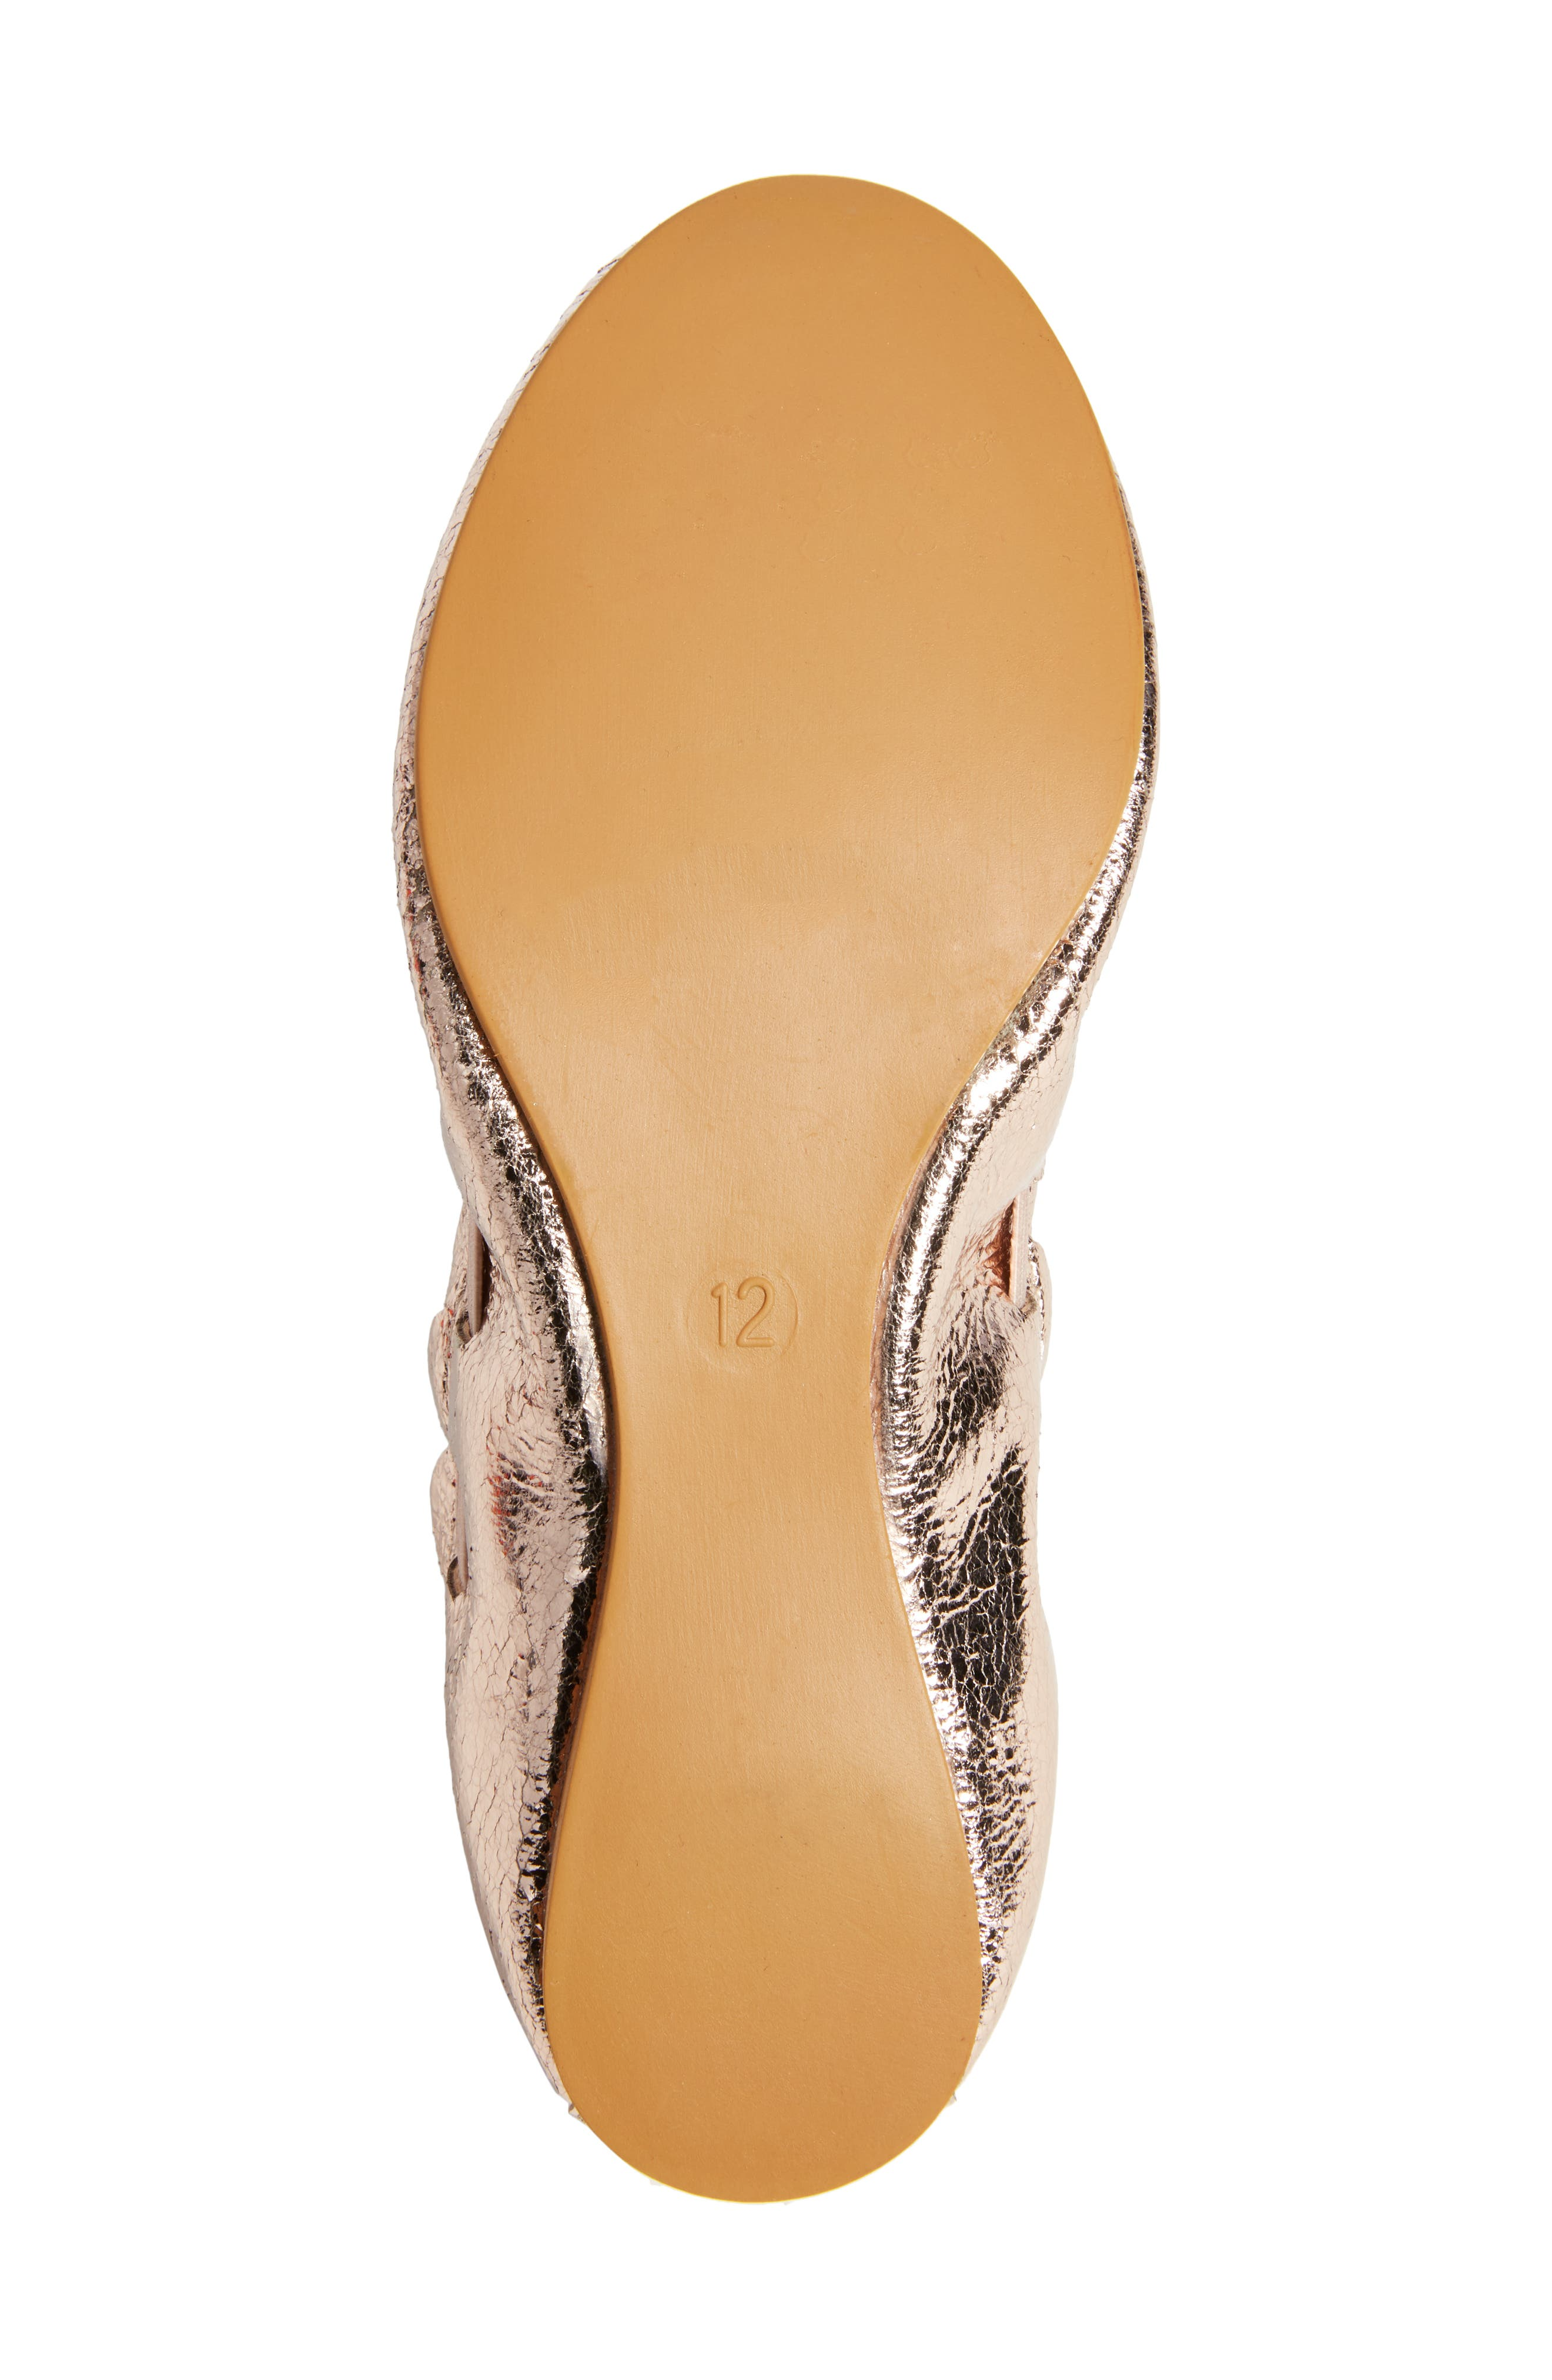 Scalloped Ballet Flat,                             Alternate thumbnail 6, color,                             ROSE GOLD CRACKLE FAUX LEATHER